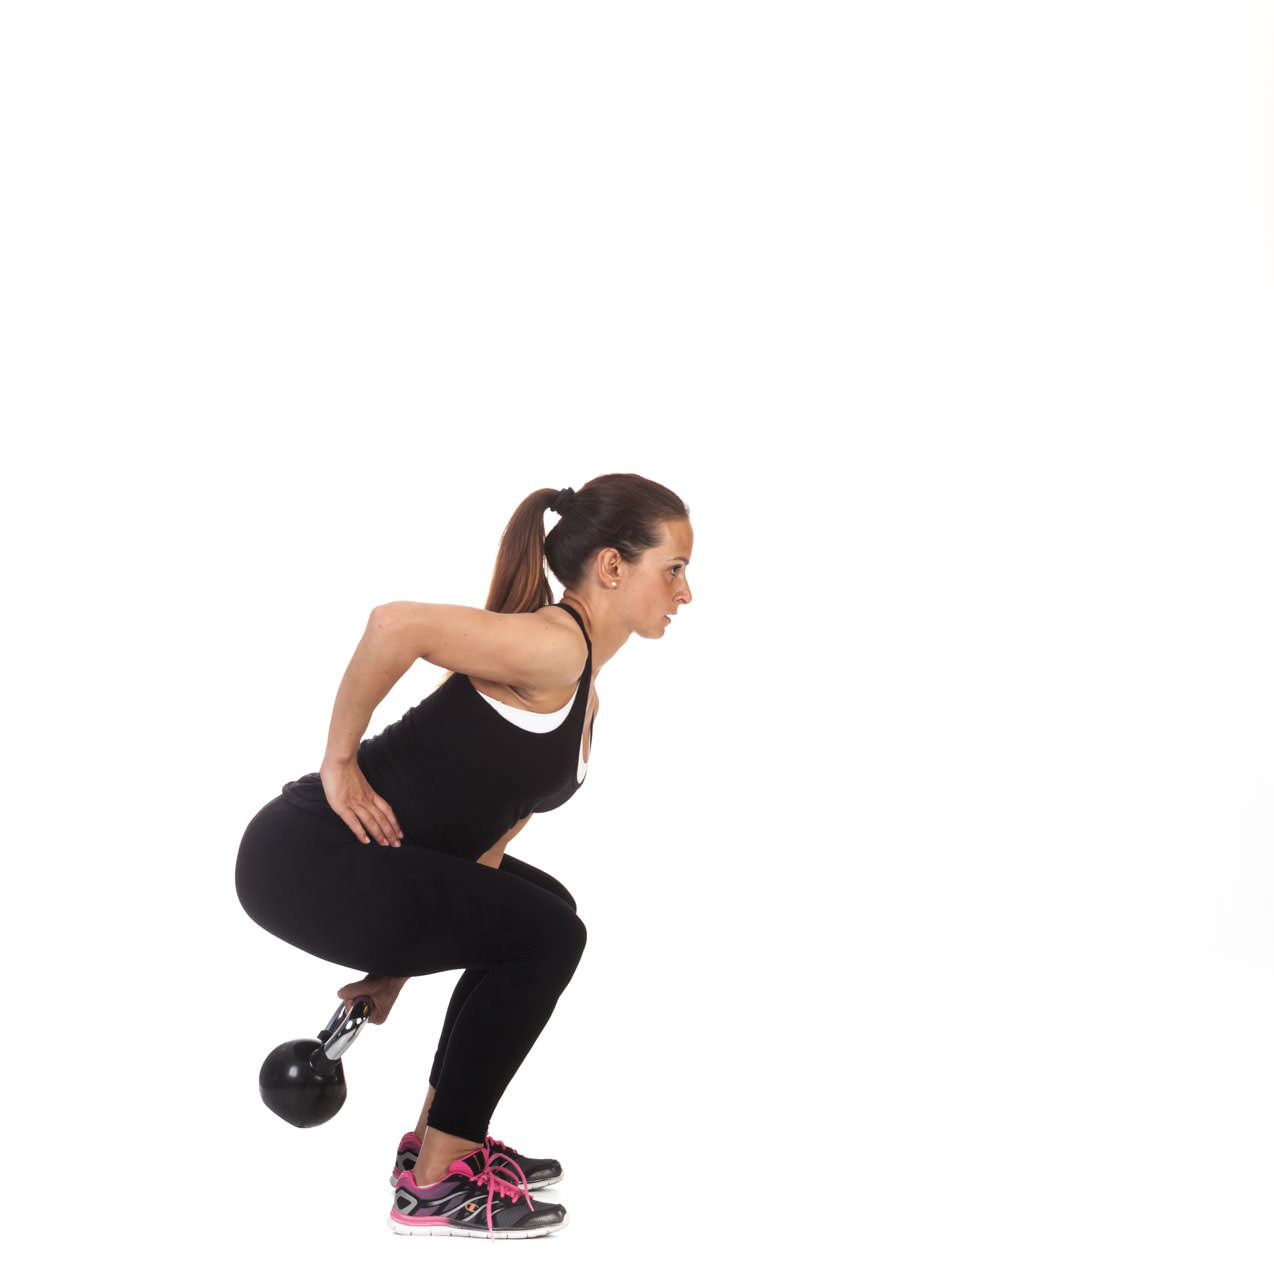 One-Arm Kettlebell Swing frame #1